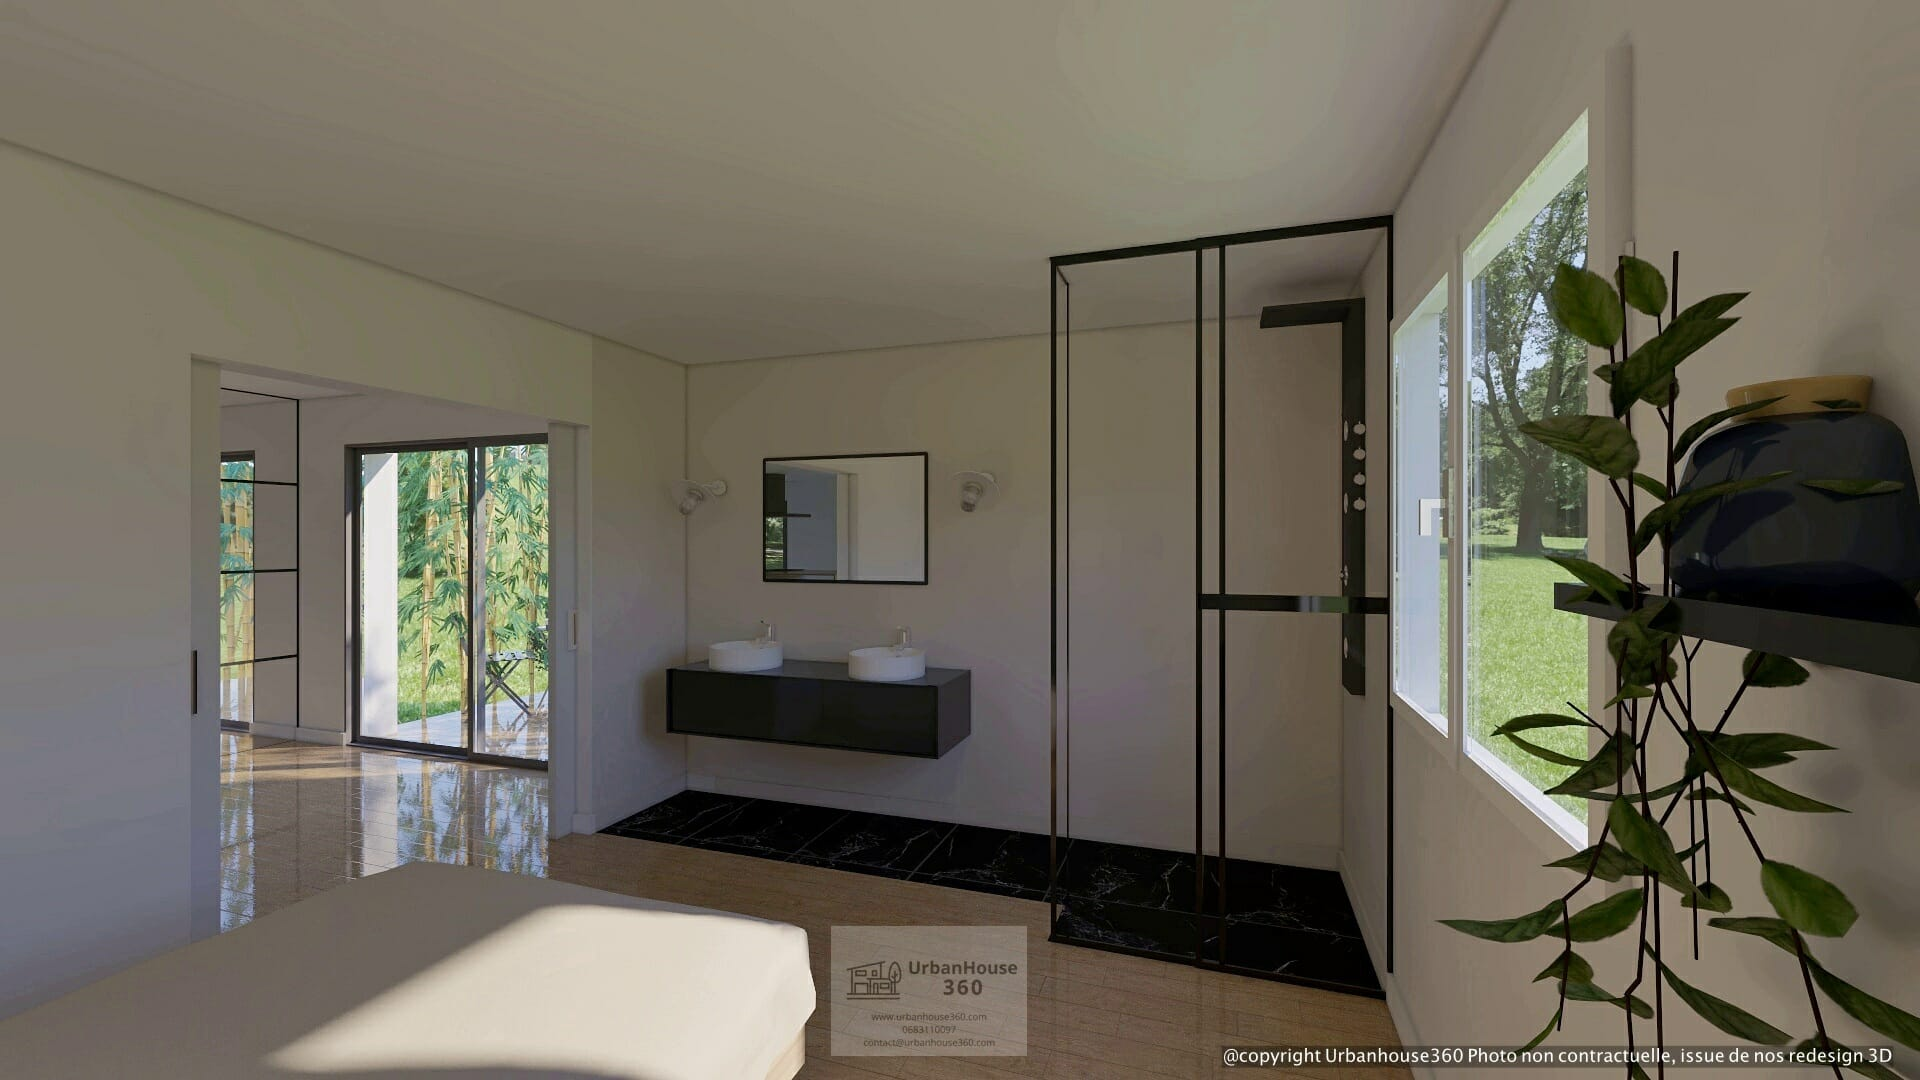 Urbanhouse360-Coulounieix-chamiers-Chambre_2